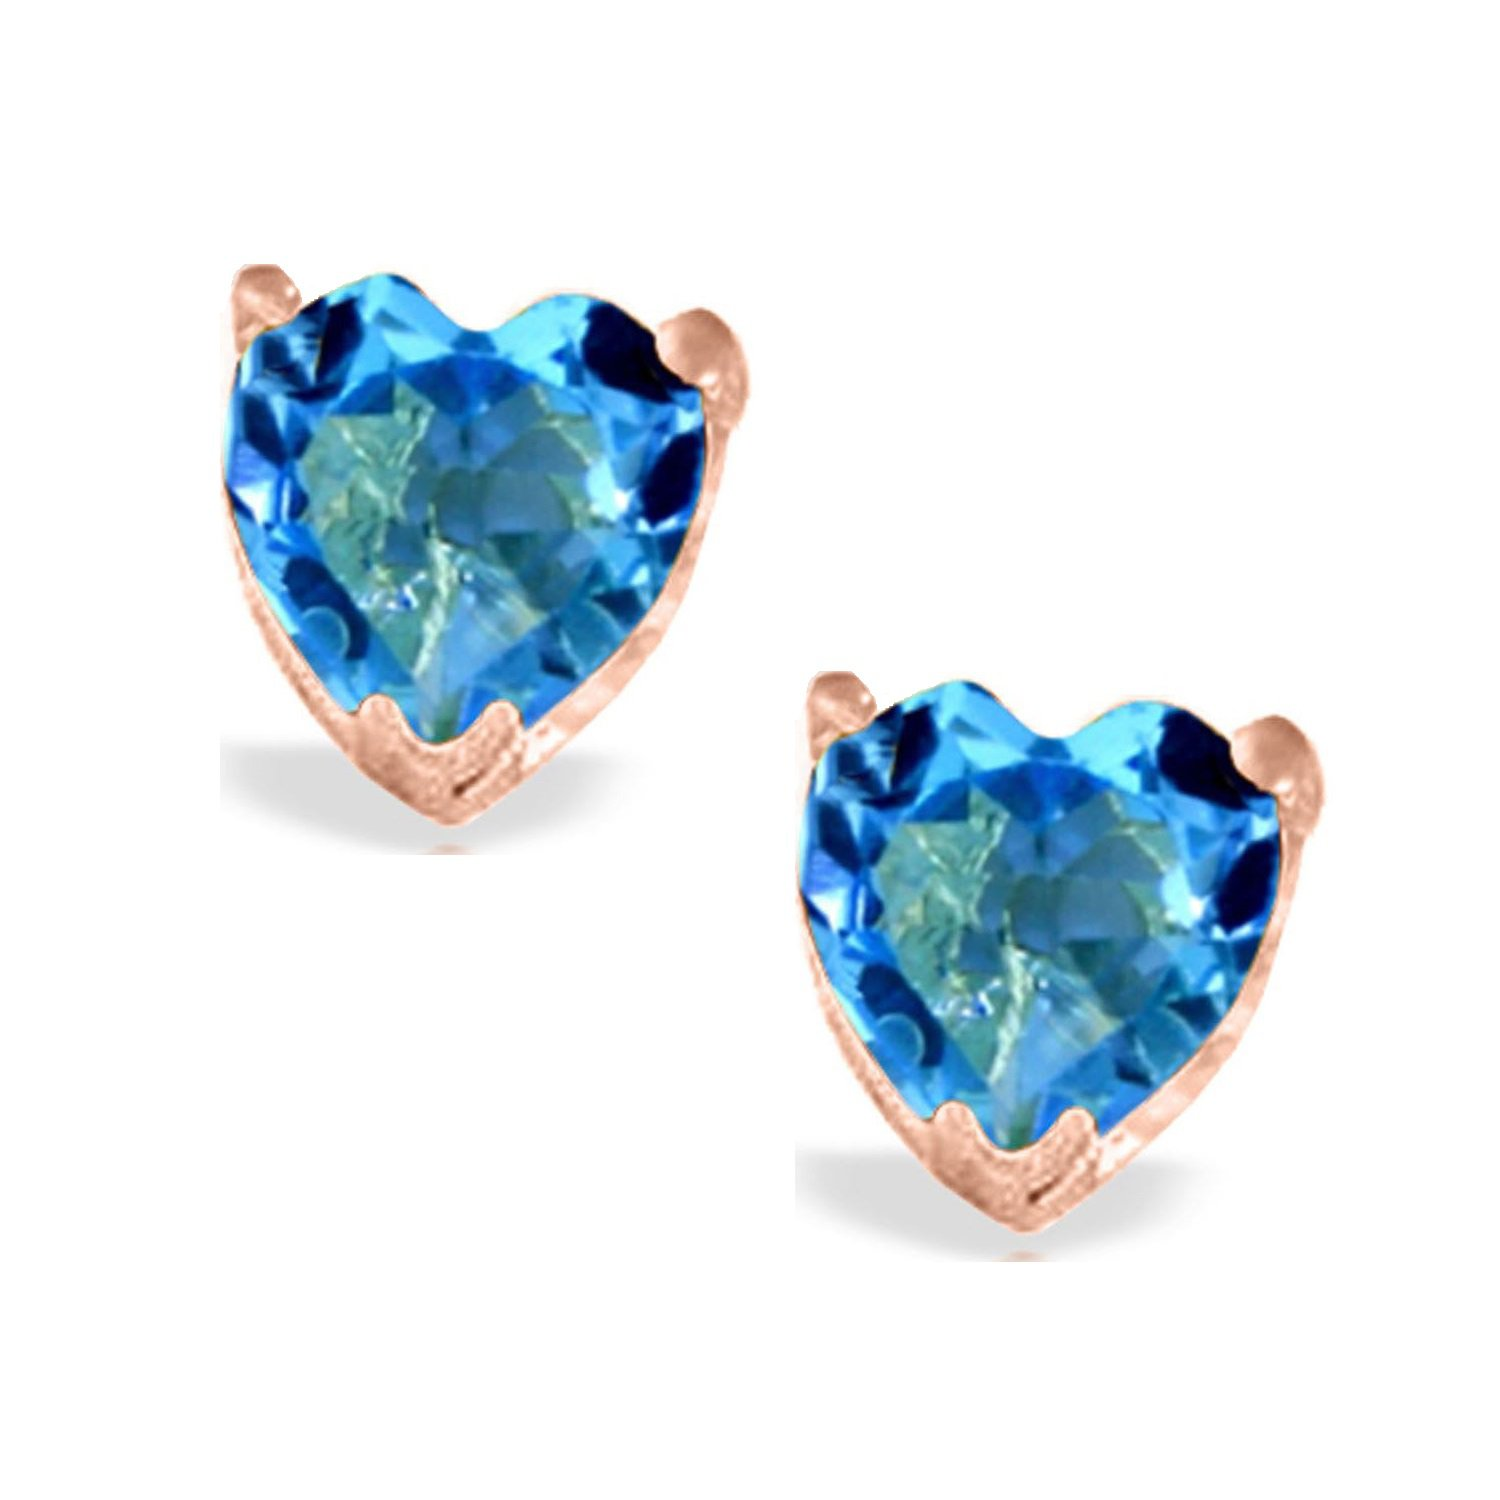 Blue Topaz Heart Stud Earrings Solid 14k Rose Gold 1813-R